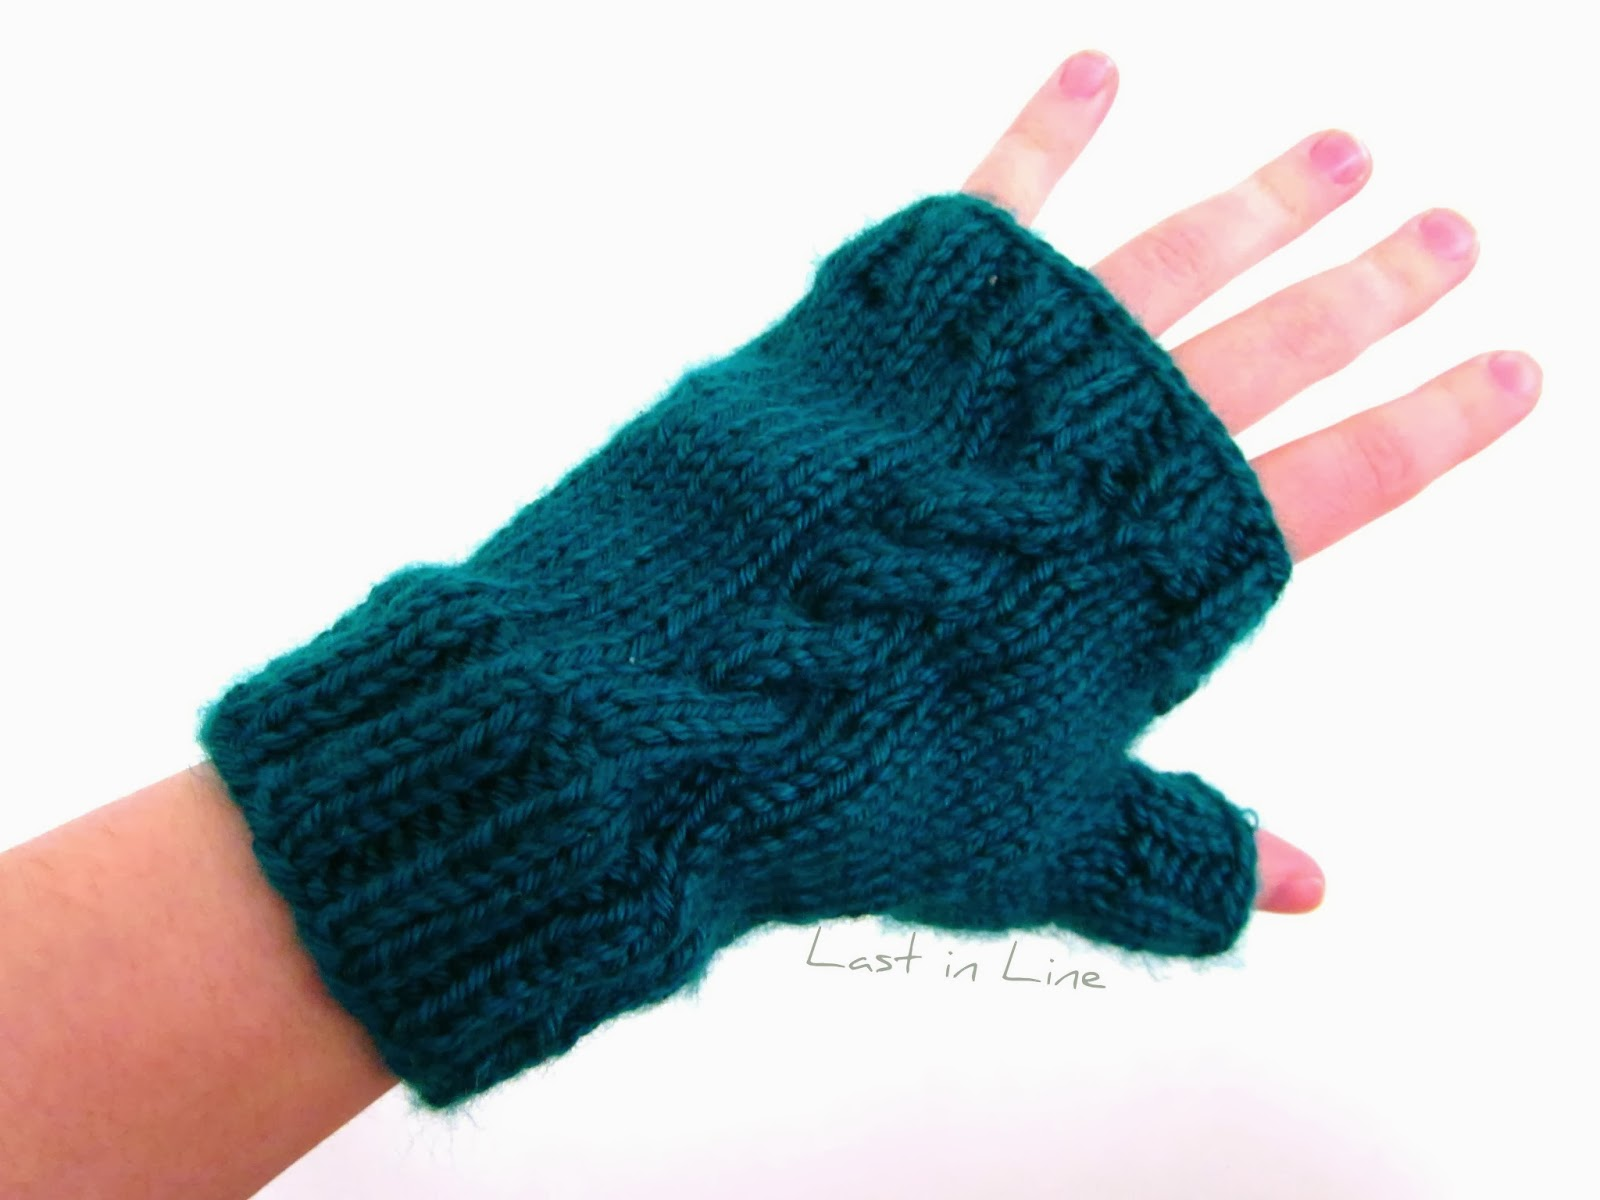 Free Knitting Pattern for fingerless gloves by Clarissa Knits. Forever Last in Line